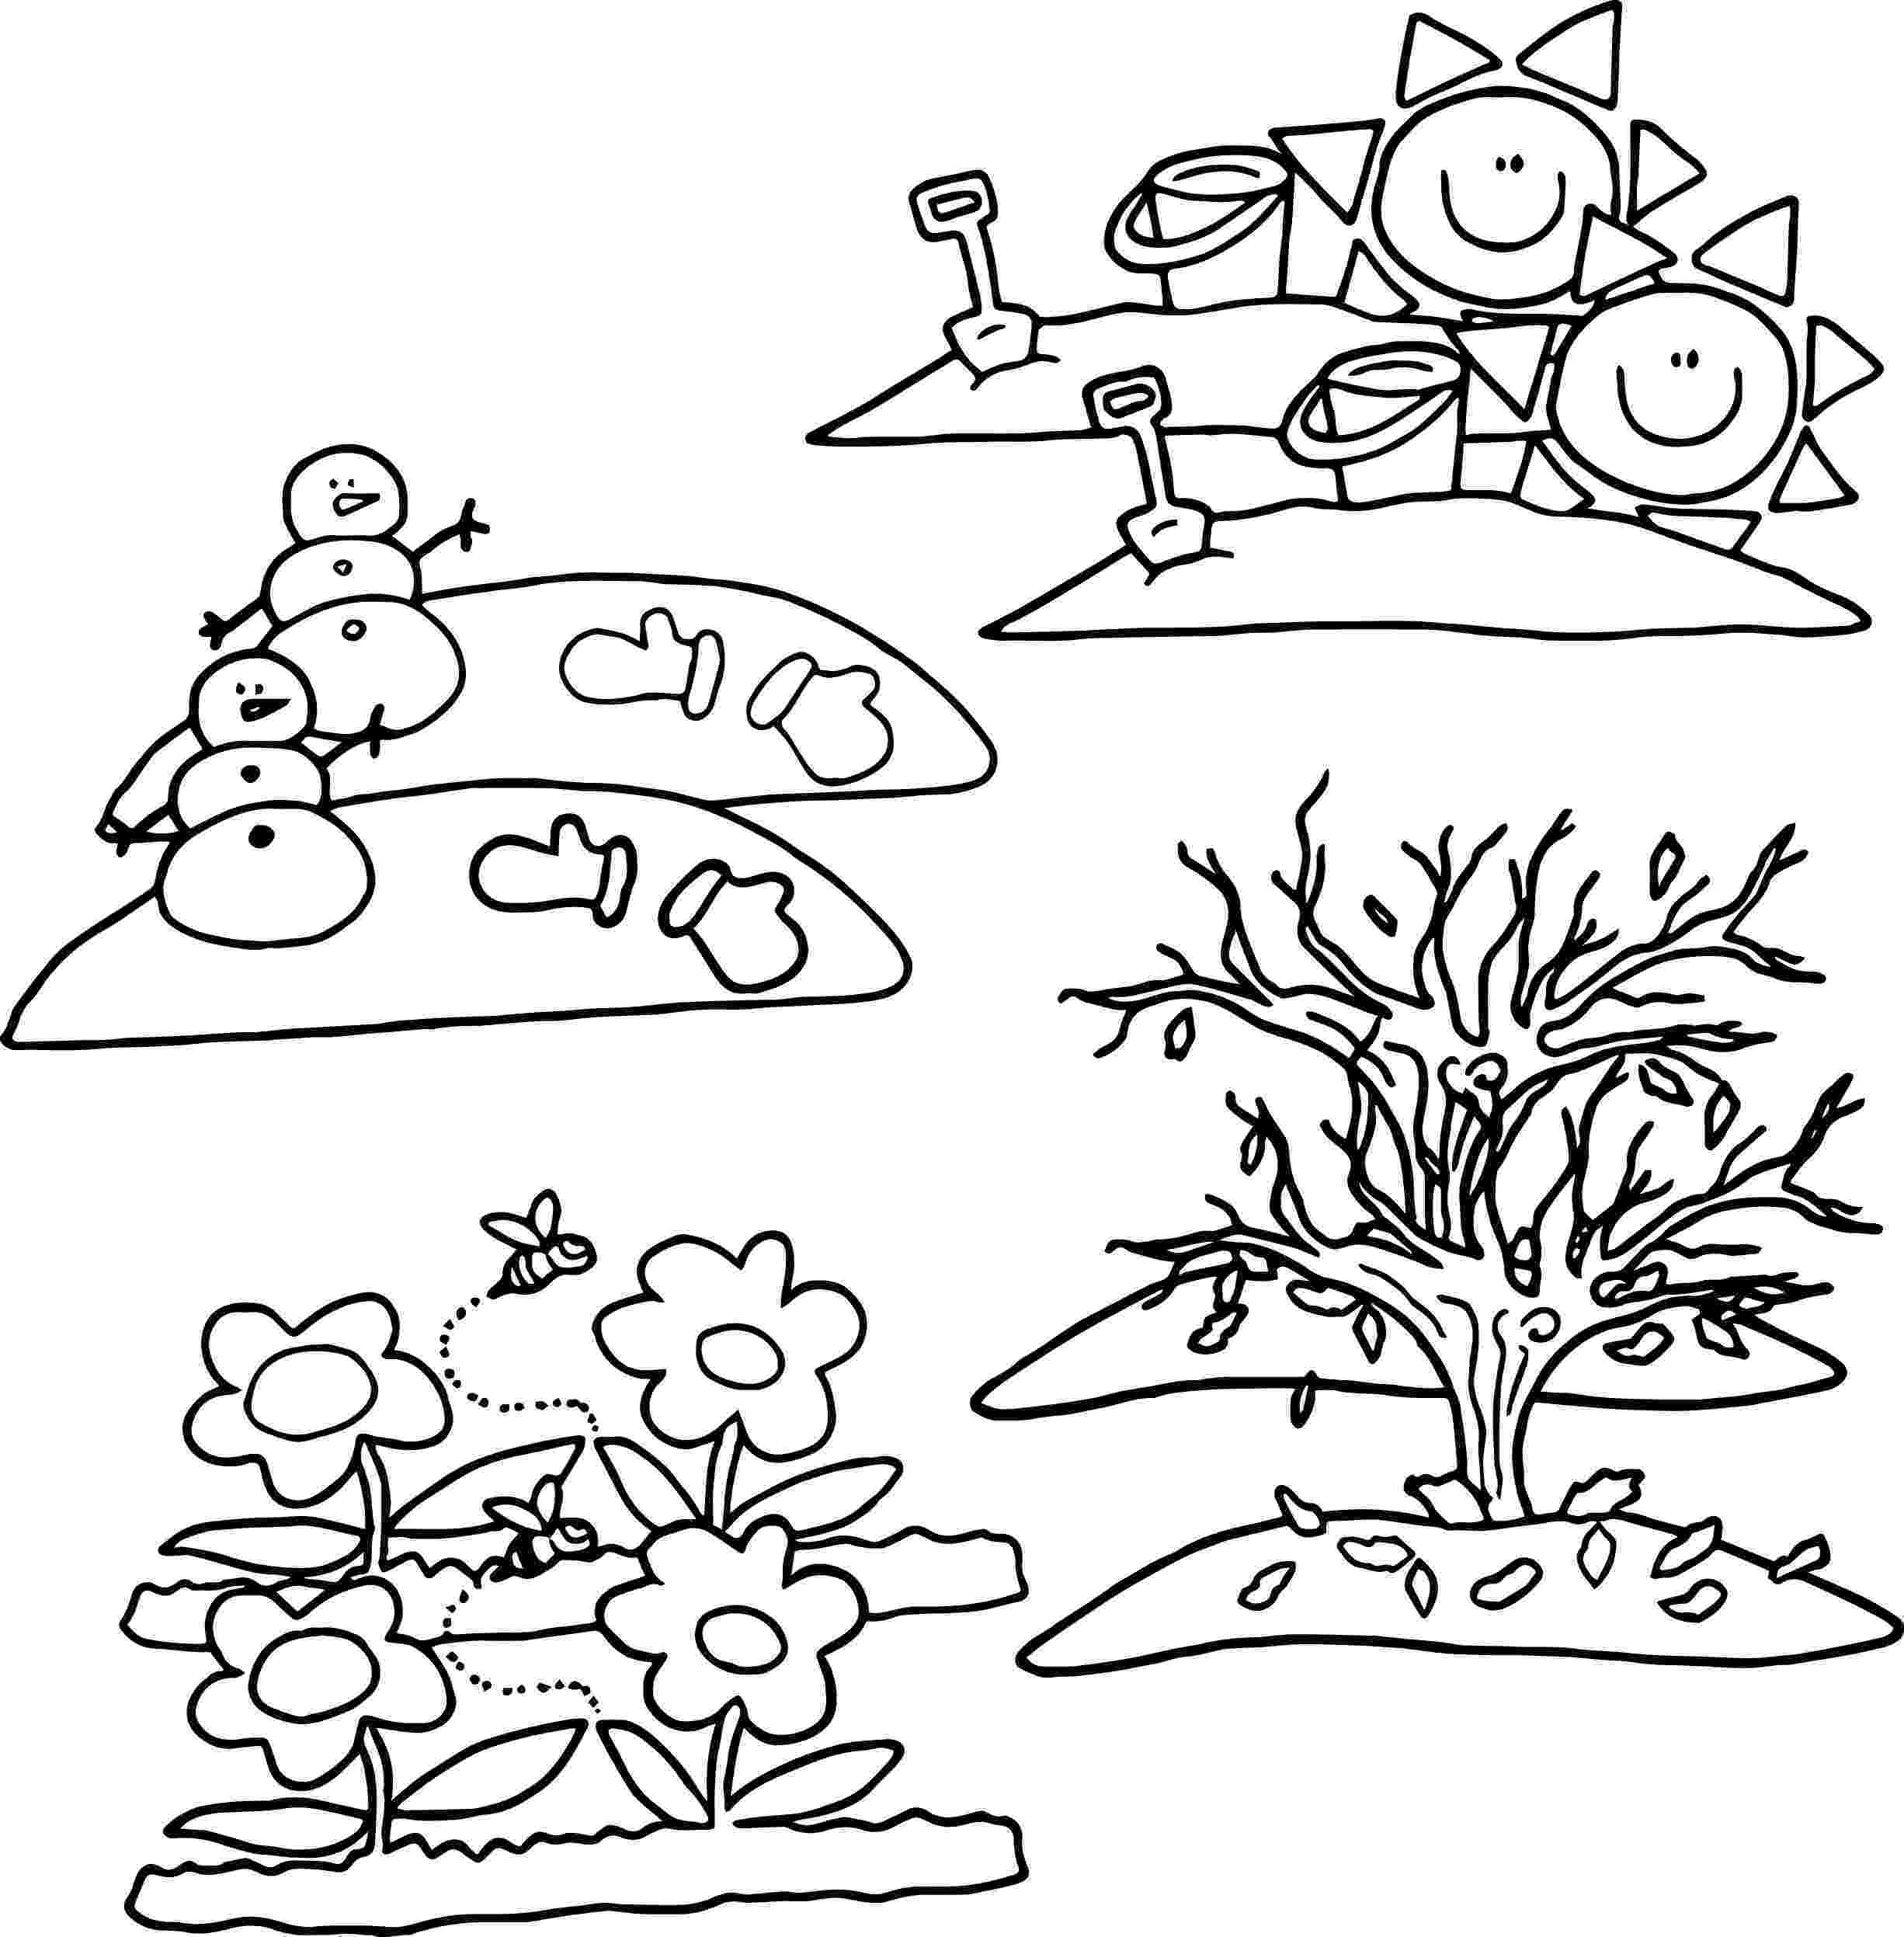 seasons coloring pages 4 seasons coloring page wecoloringpage 5 Évszakok pages seasons coloring